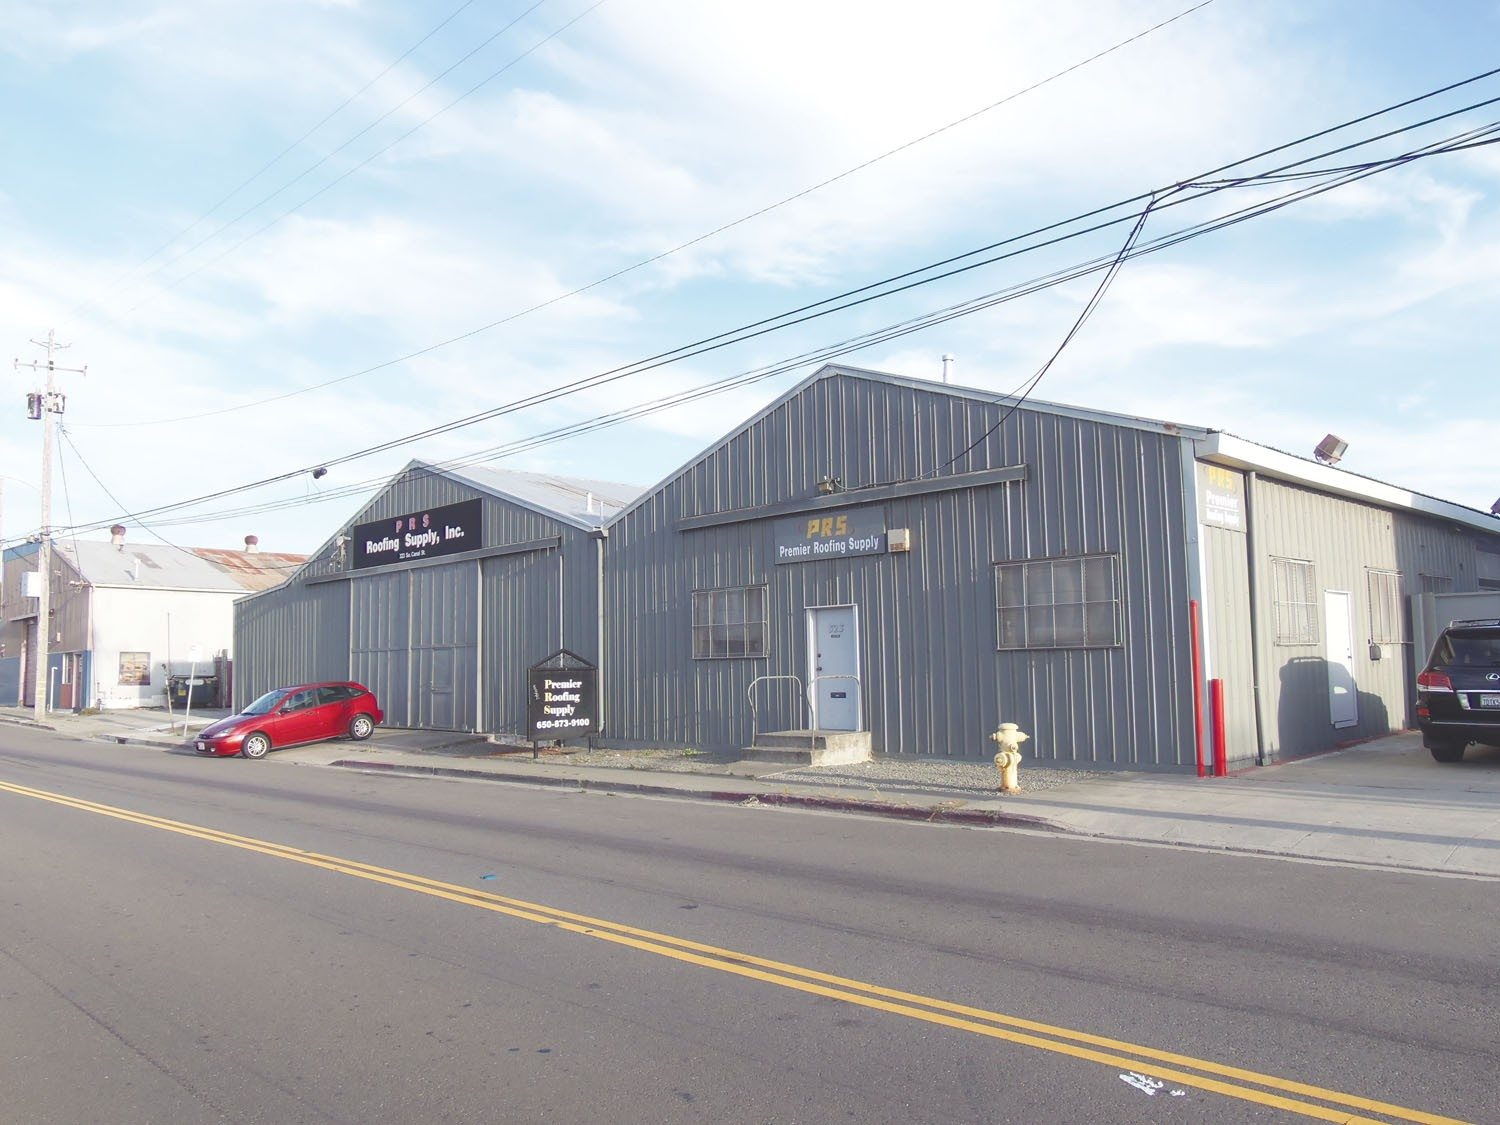 Brendan P. Bartholomew/Special to The S.F. ExaminerSouth San Francisco's City Council is expected to consider a long-term agreement later this month to allow FlightCar to develop space at a former roofing supply warehouse at 323 South Canal St.